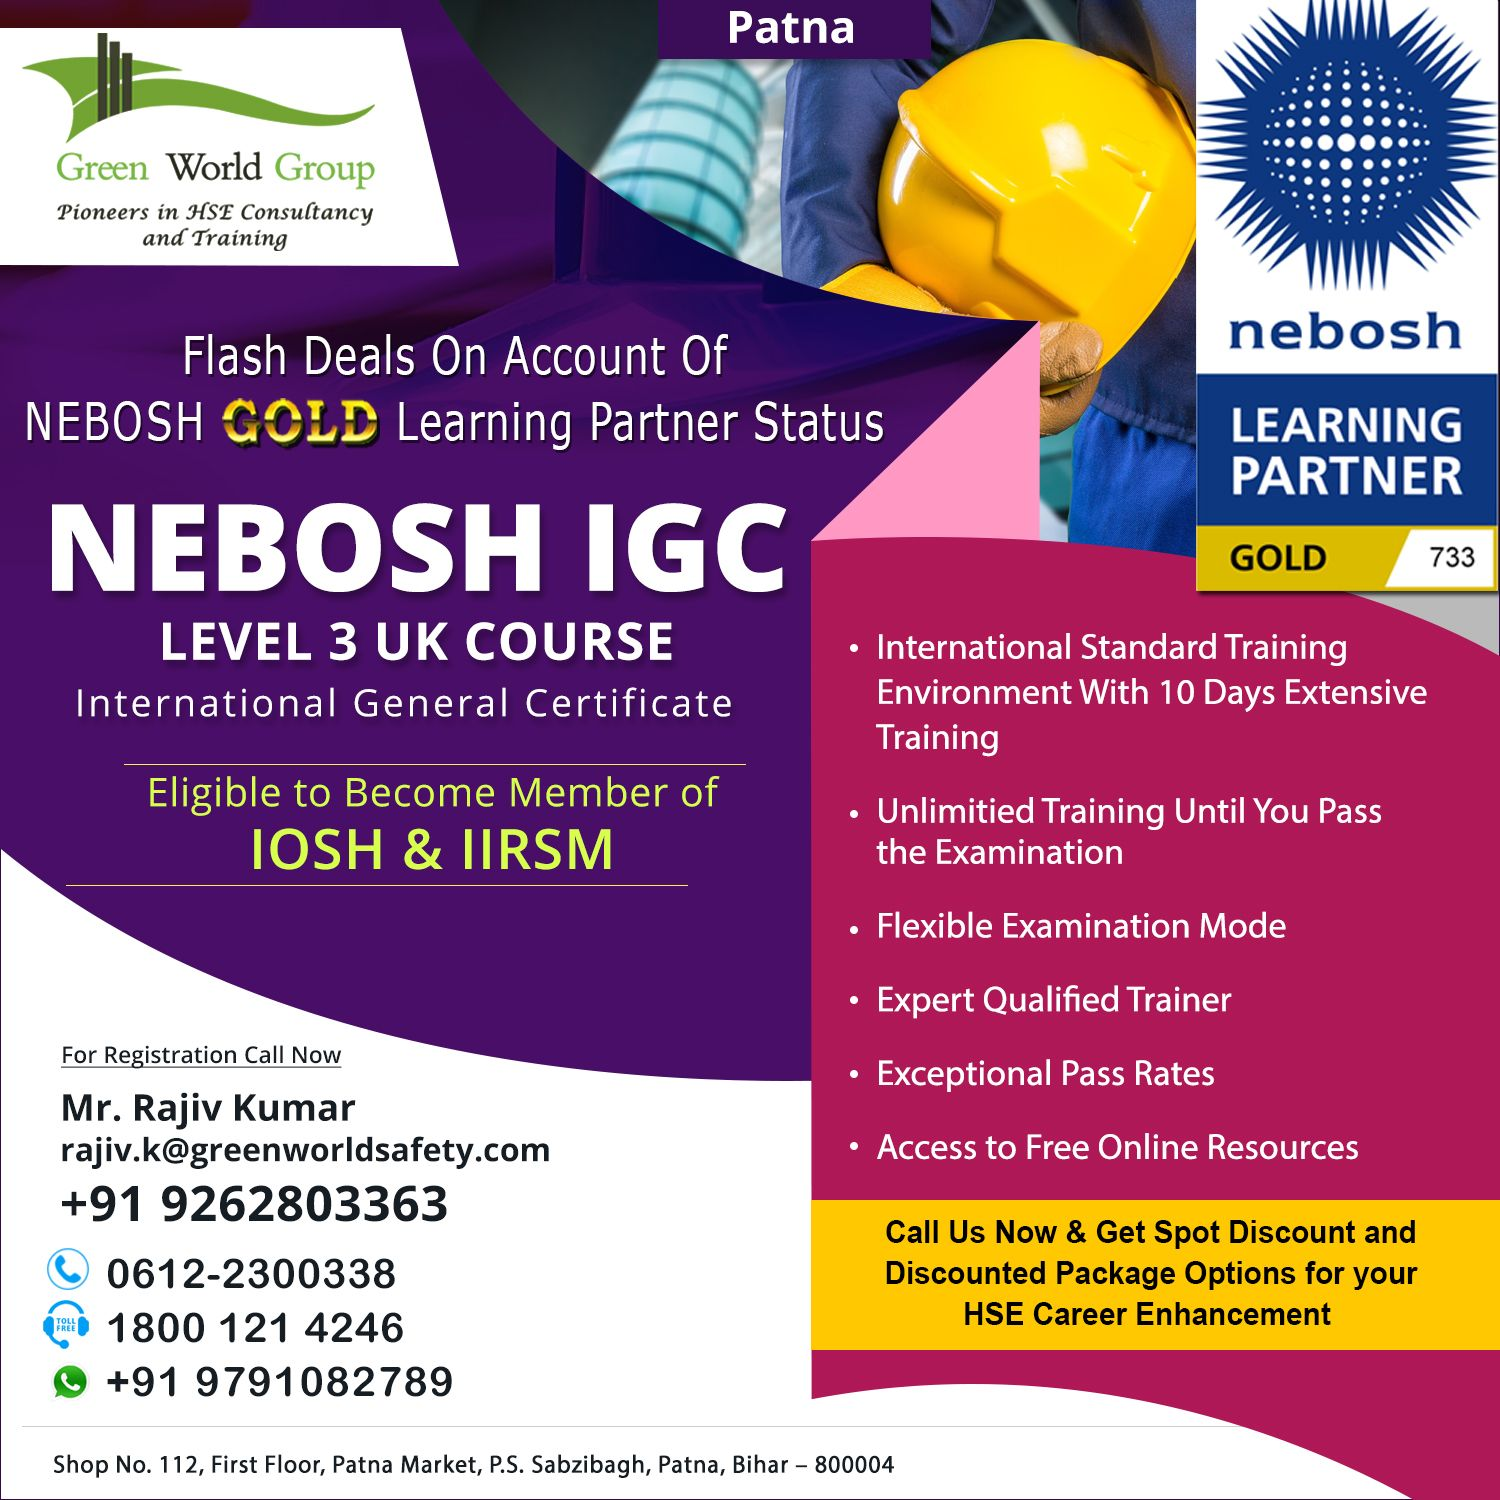 NEBOSH Safety Course in Patna in 2020 (With images